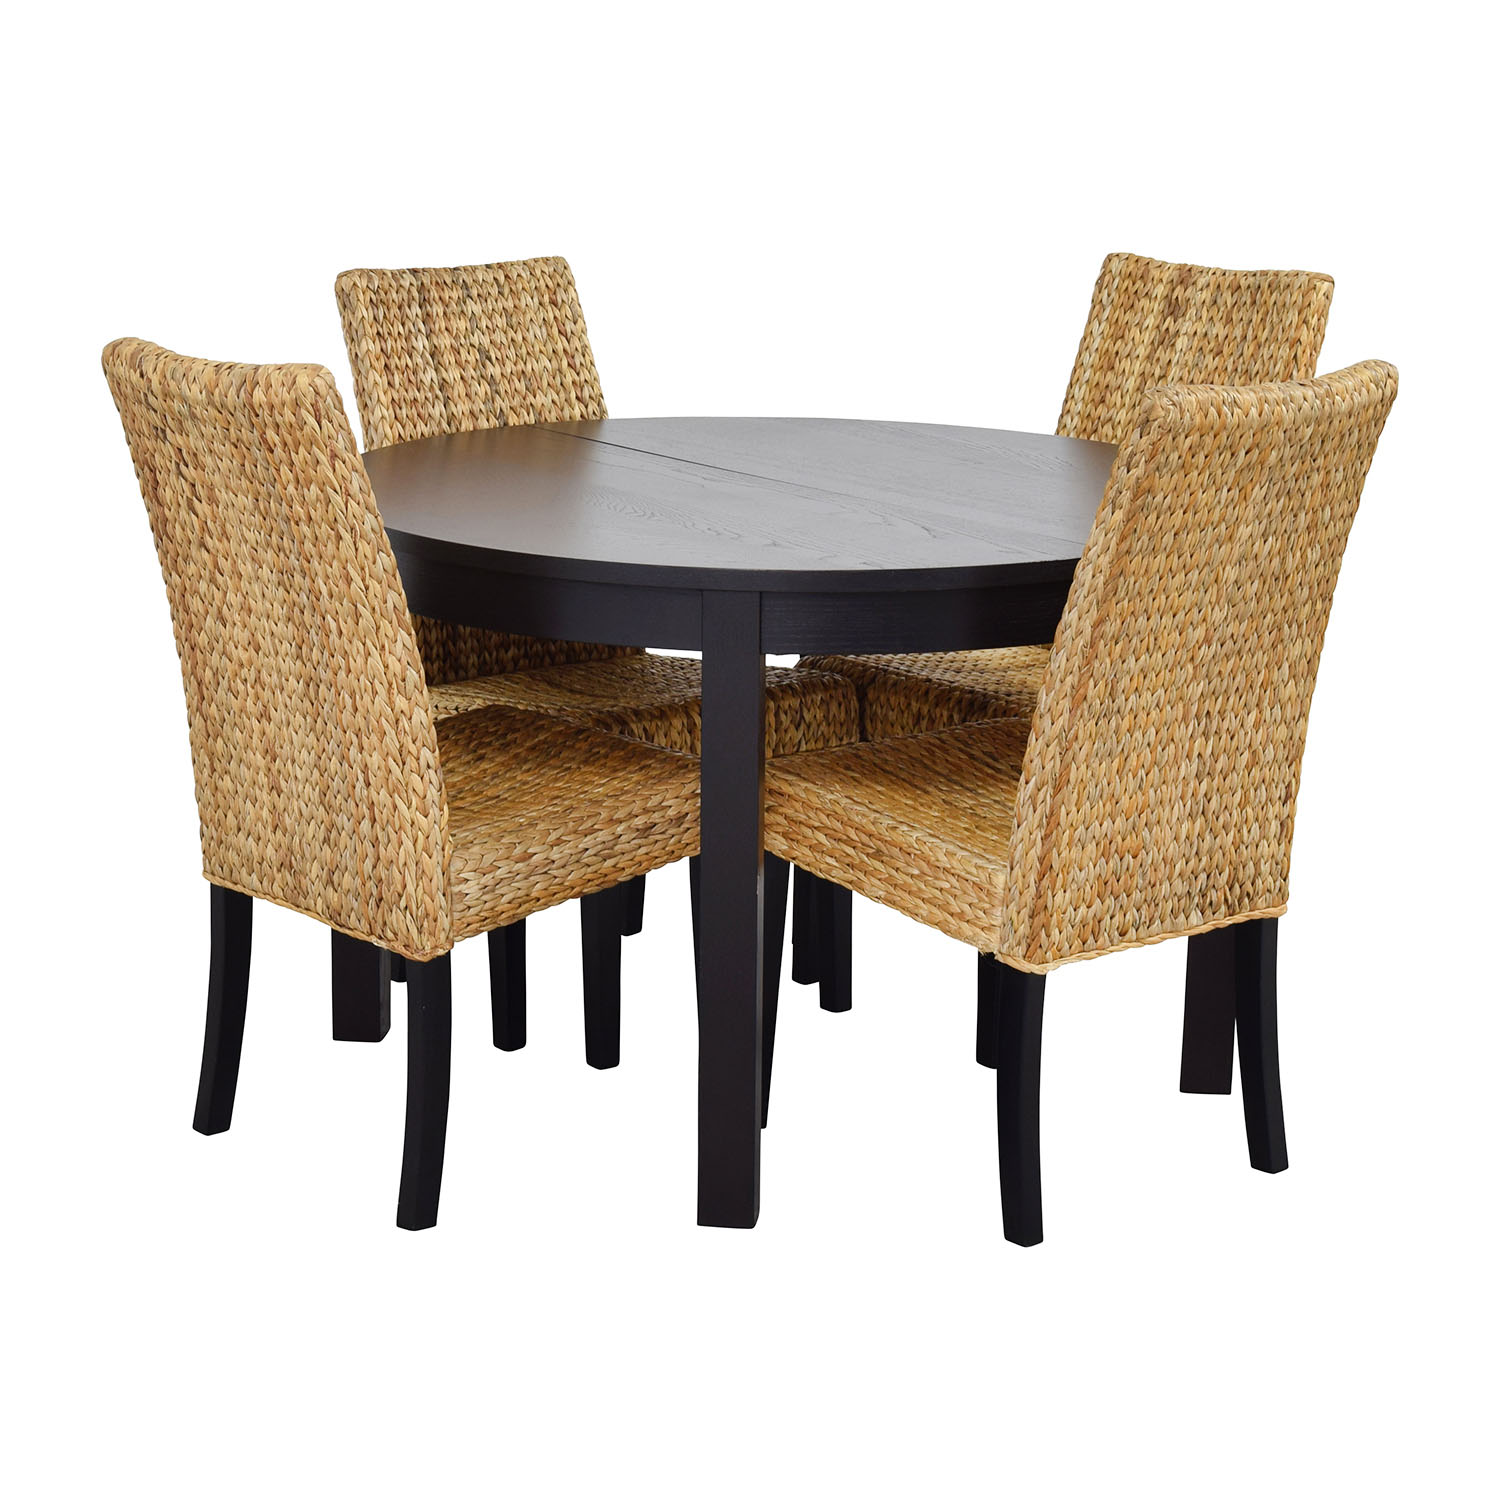 66% OFF - Round Black Dining Table Set with Four Chairs ...